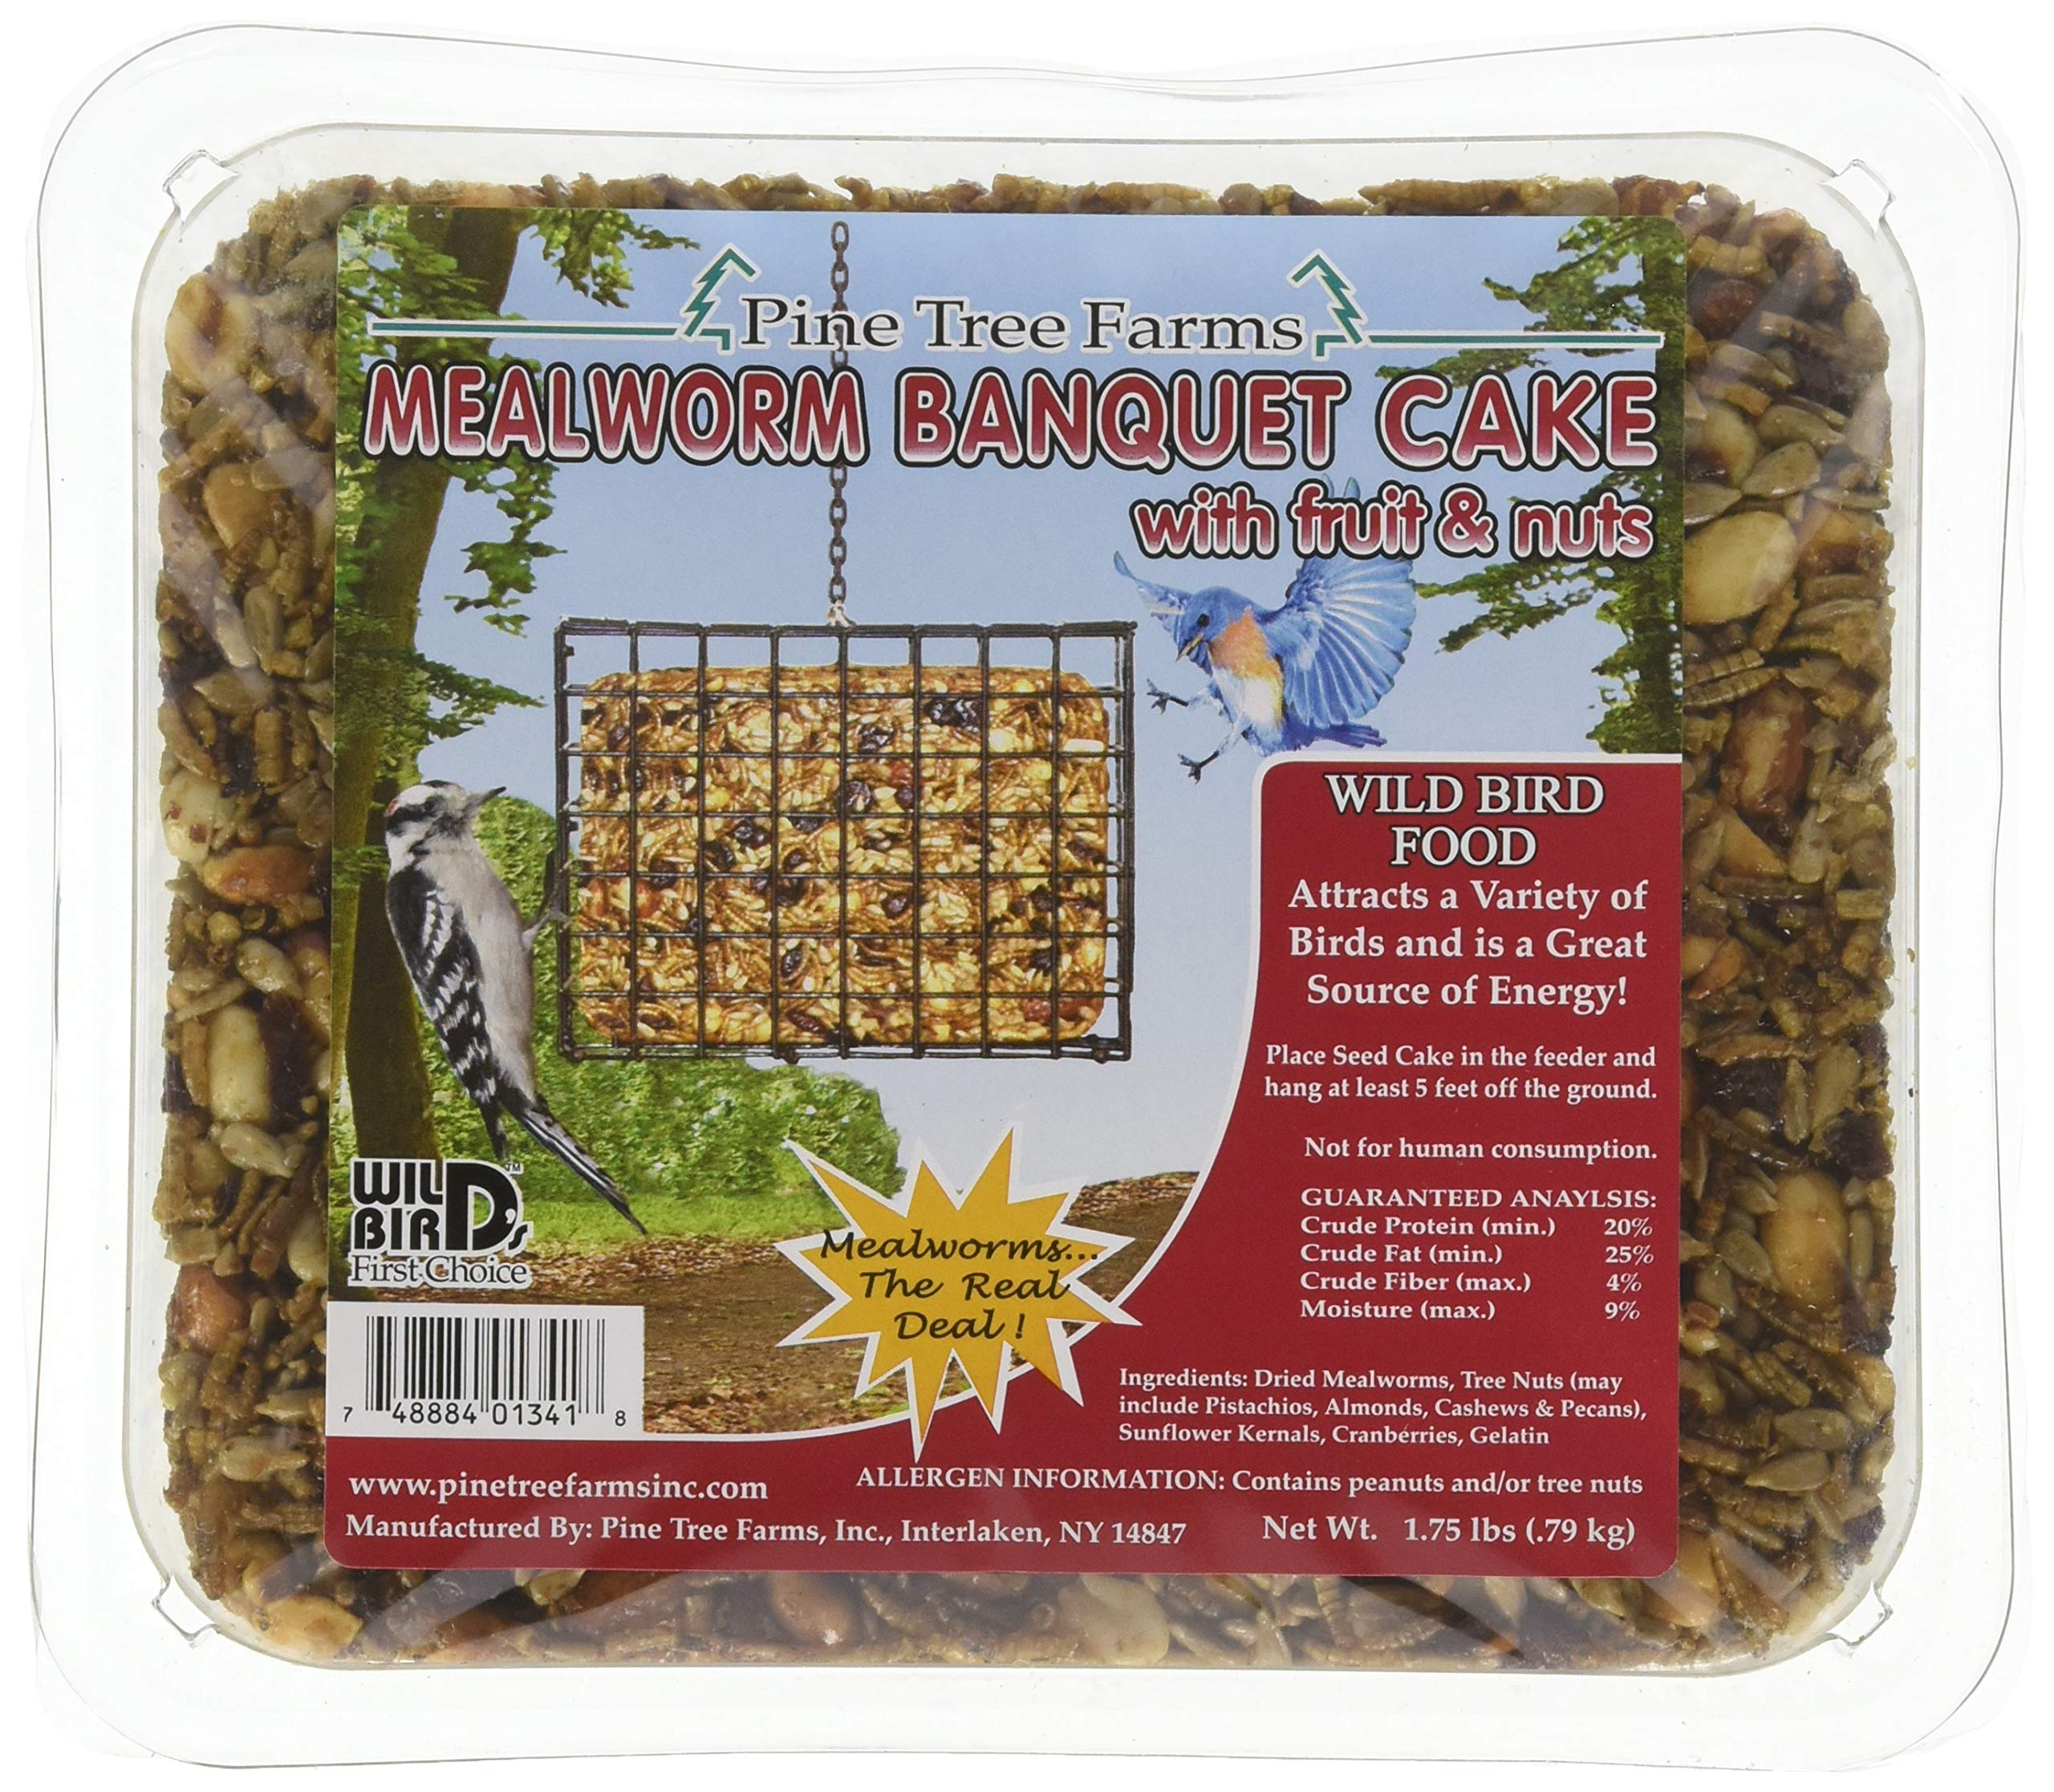 Pine Tree Farms 1341 Mealworm Banquet Cake, 1.75 lb